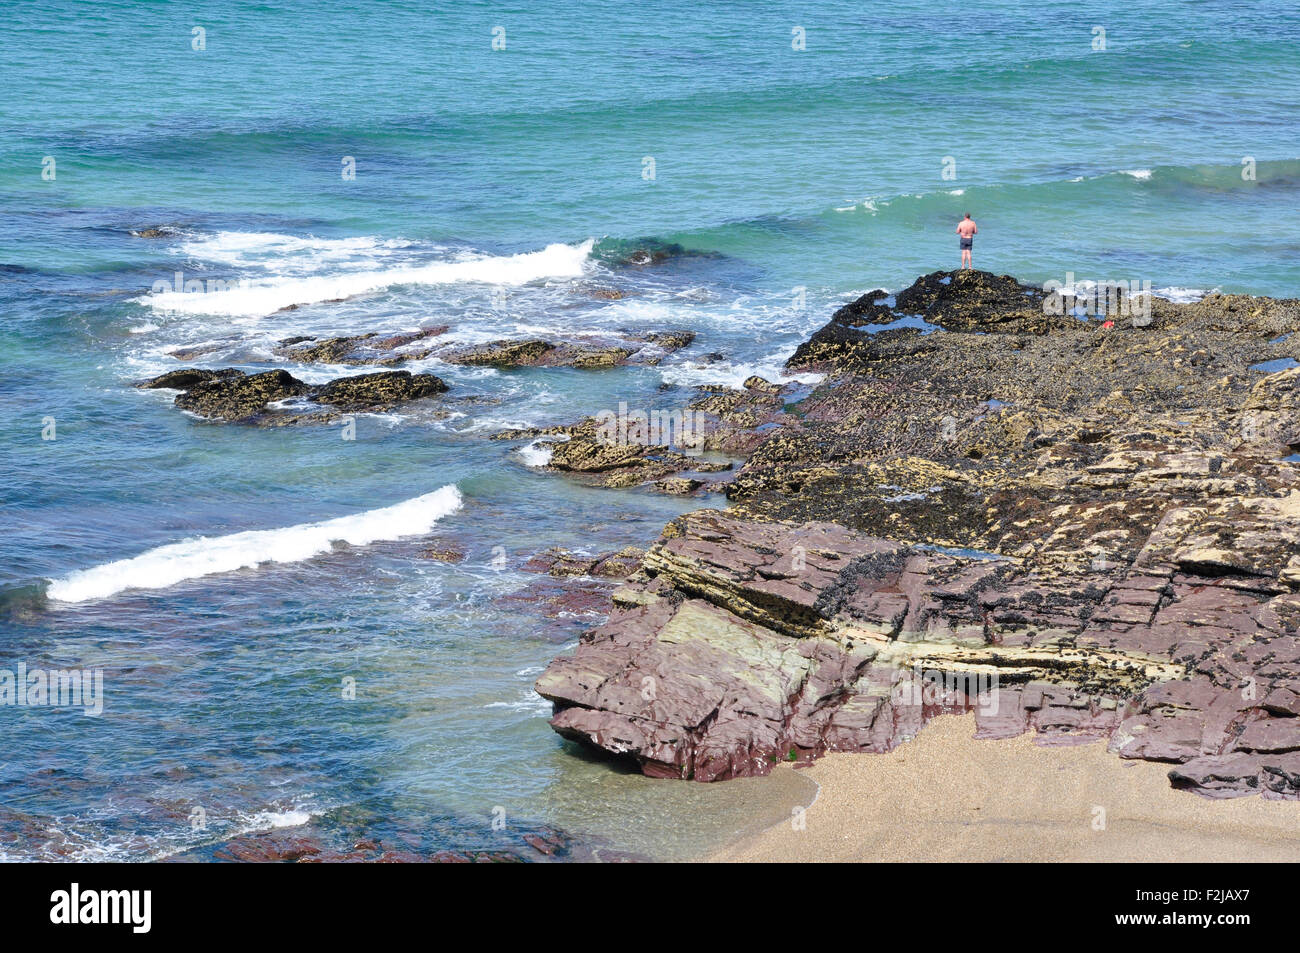 Solitary bather - tiny figure perched on rocks above the sea - breaking waves - blue sea - bright sunshine - Stock Image